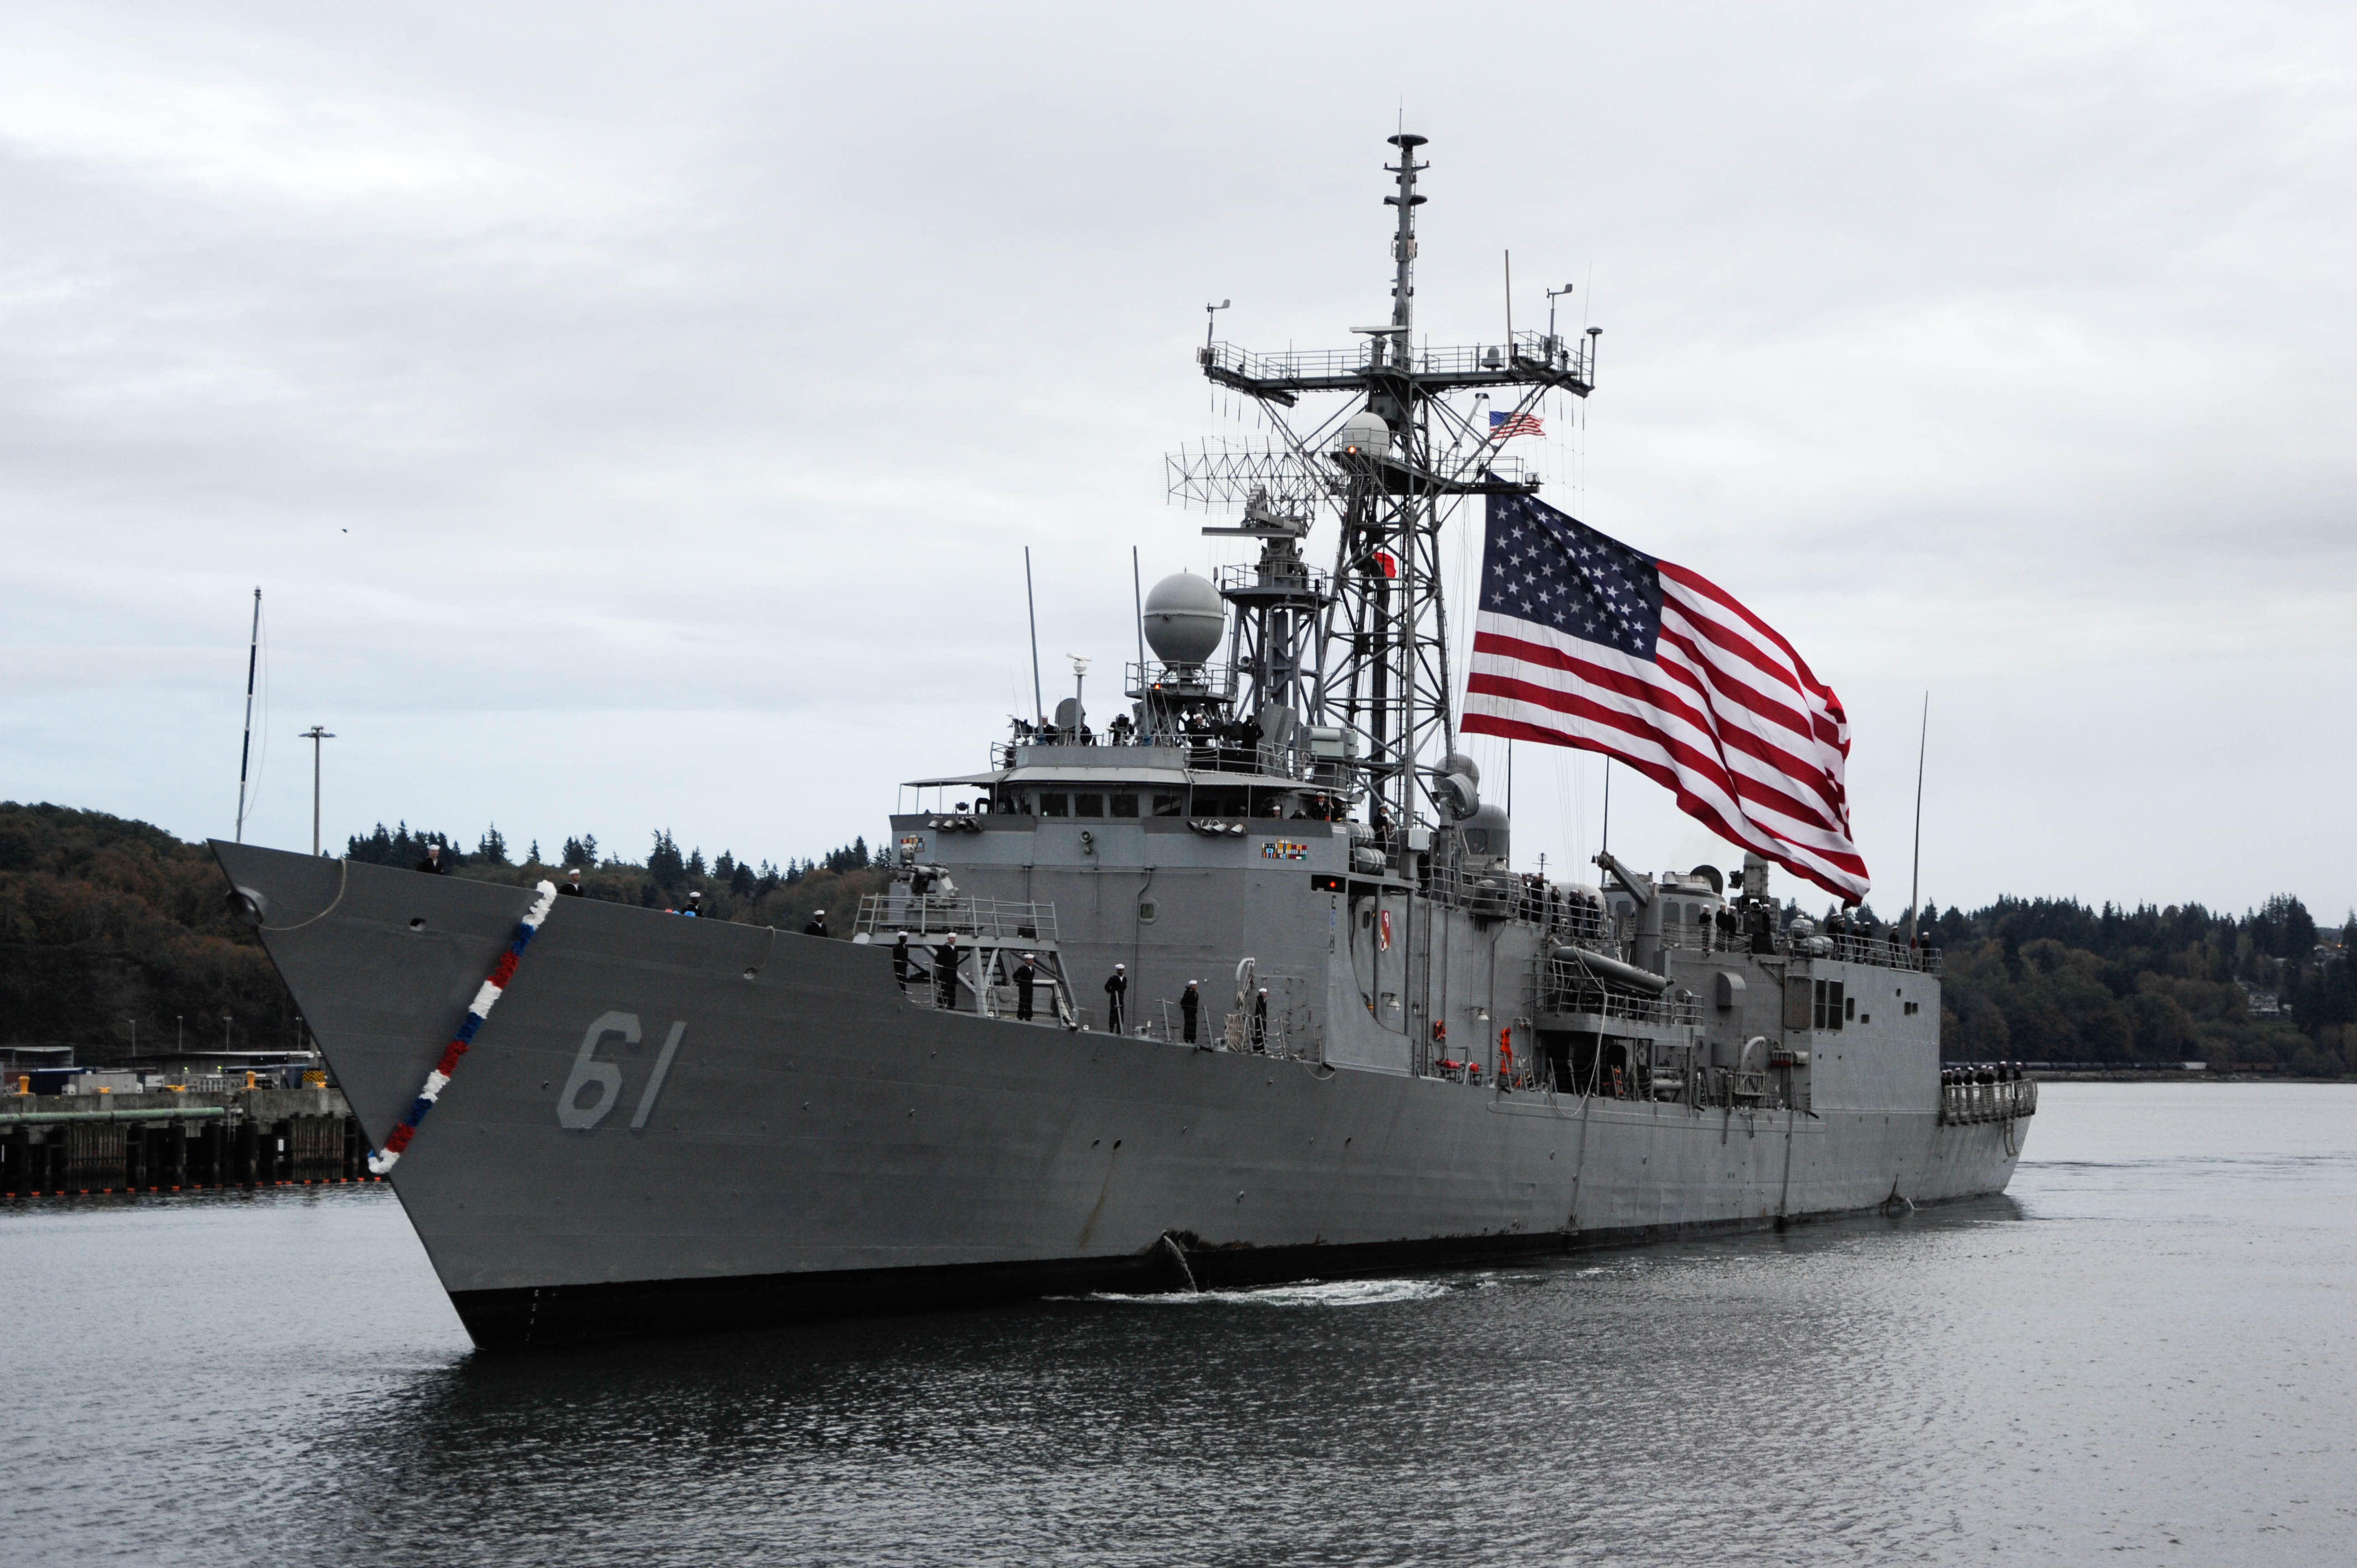 USS Ingraham (FFG 61) prepares to moor at Naval Station Everett following a deployment to the U.S. 4th Fleet. US Navy Photo